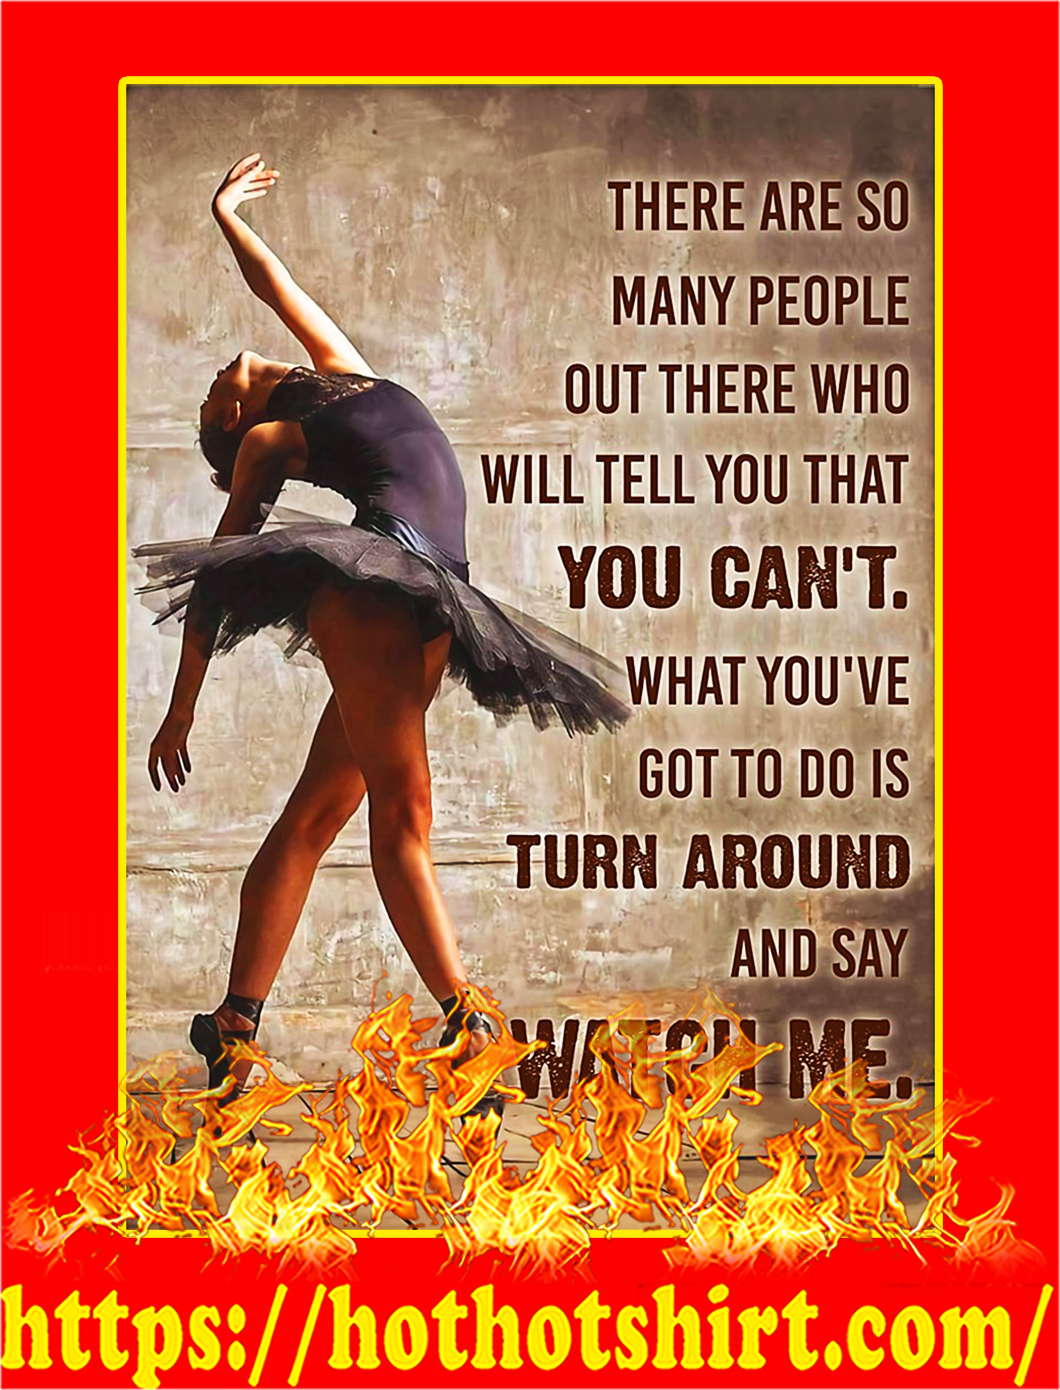 Ballet dancer there are so many people out there poster - A2